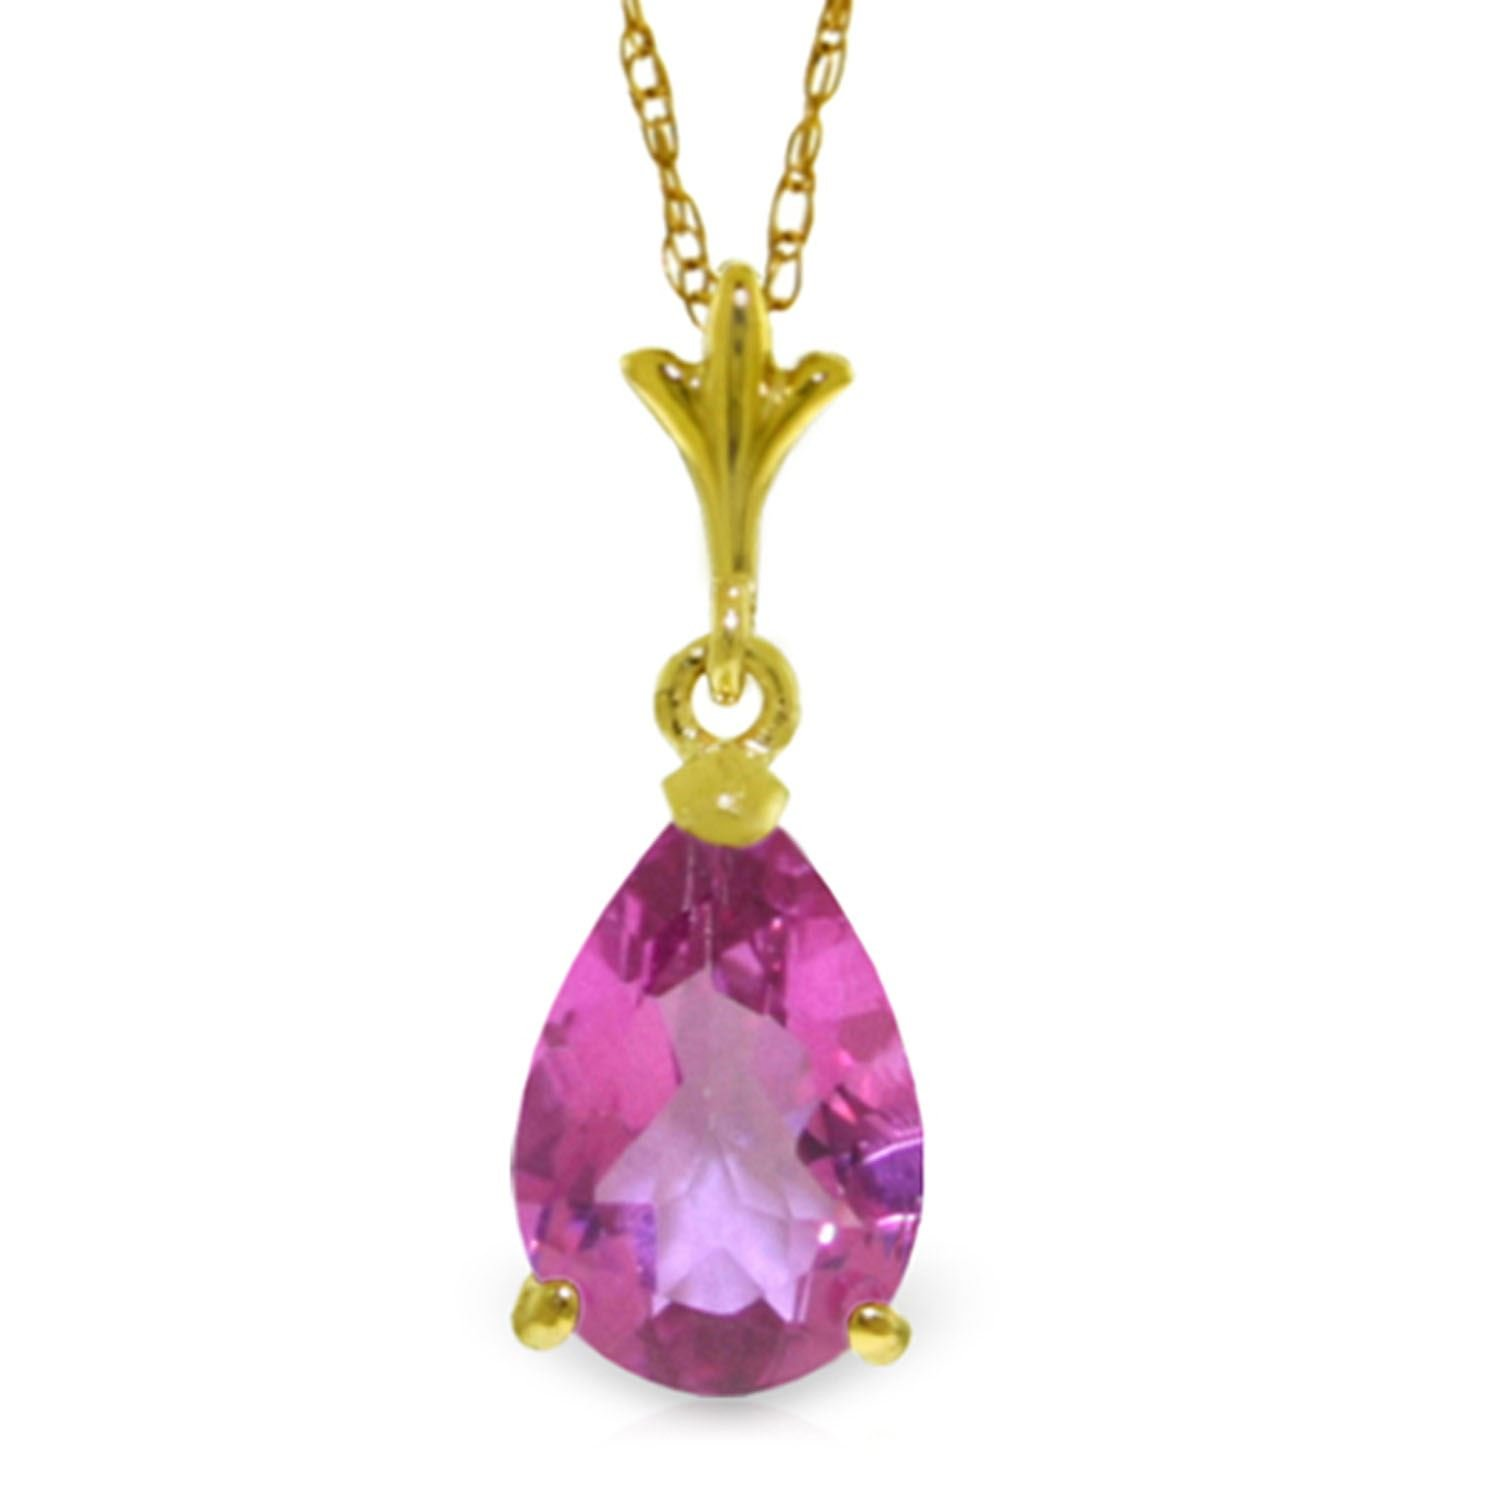 ALARRI 1.5 Carat 14K Solid Gold Chanting Love Pink Topaz Necklace with 18 Inch Chain Length